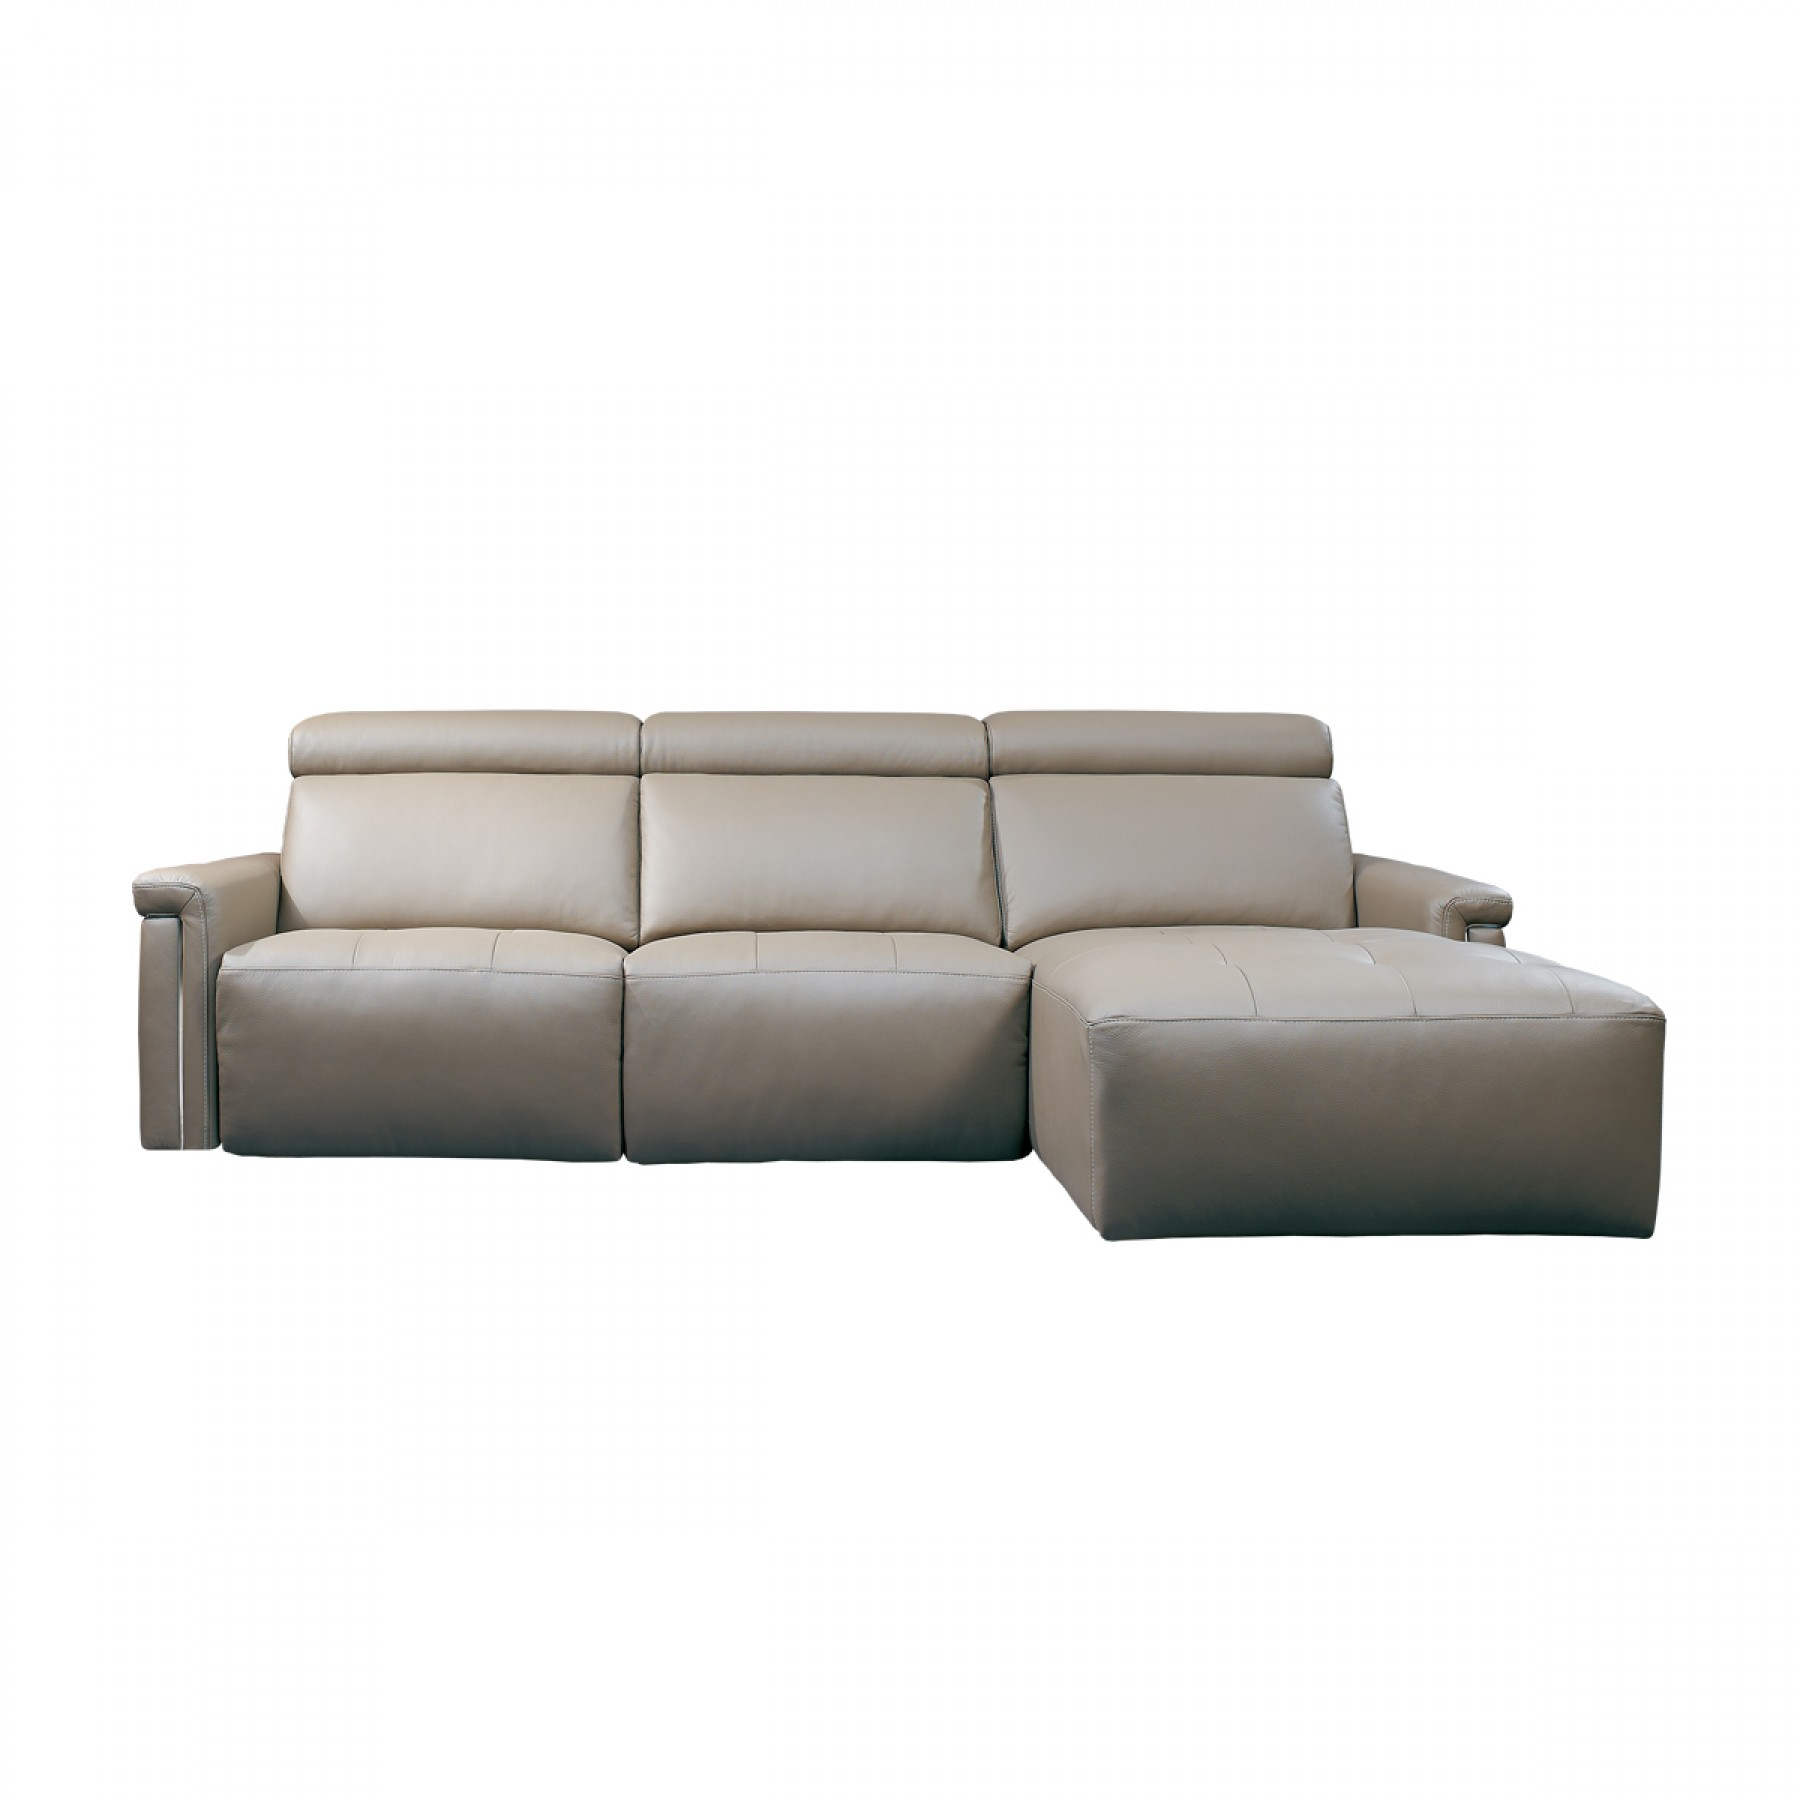 chaise recliner sofa lazyboy sofas casale with beyond furniture